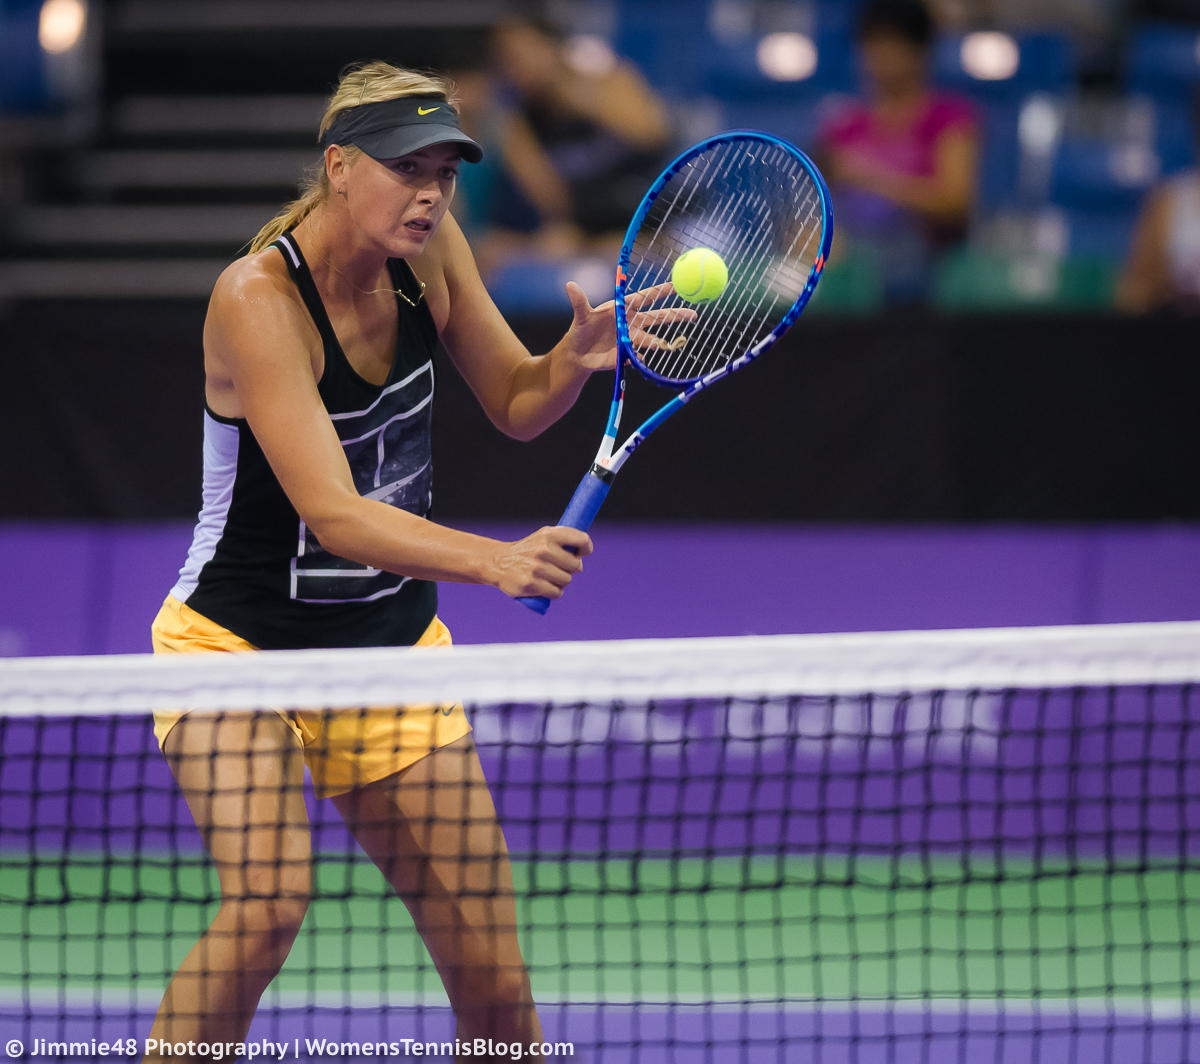 Wta: Singapore Warms Up For WTA Finals – Gallery